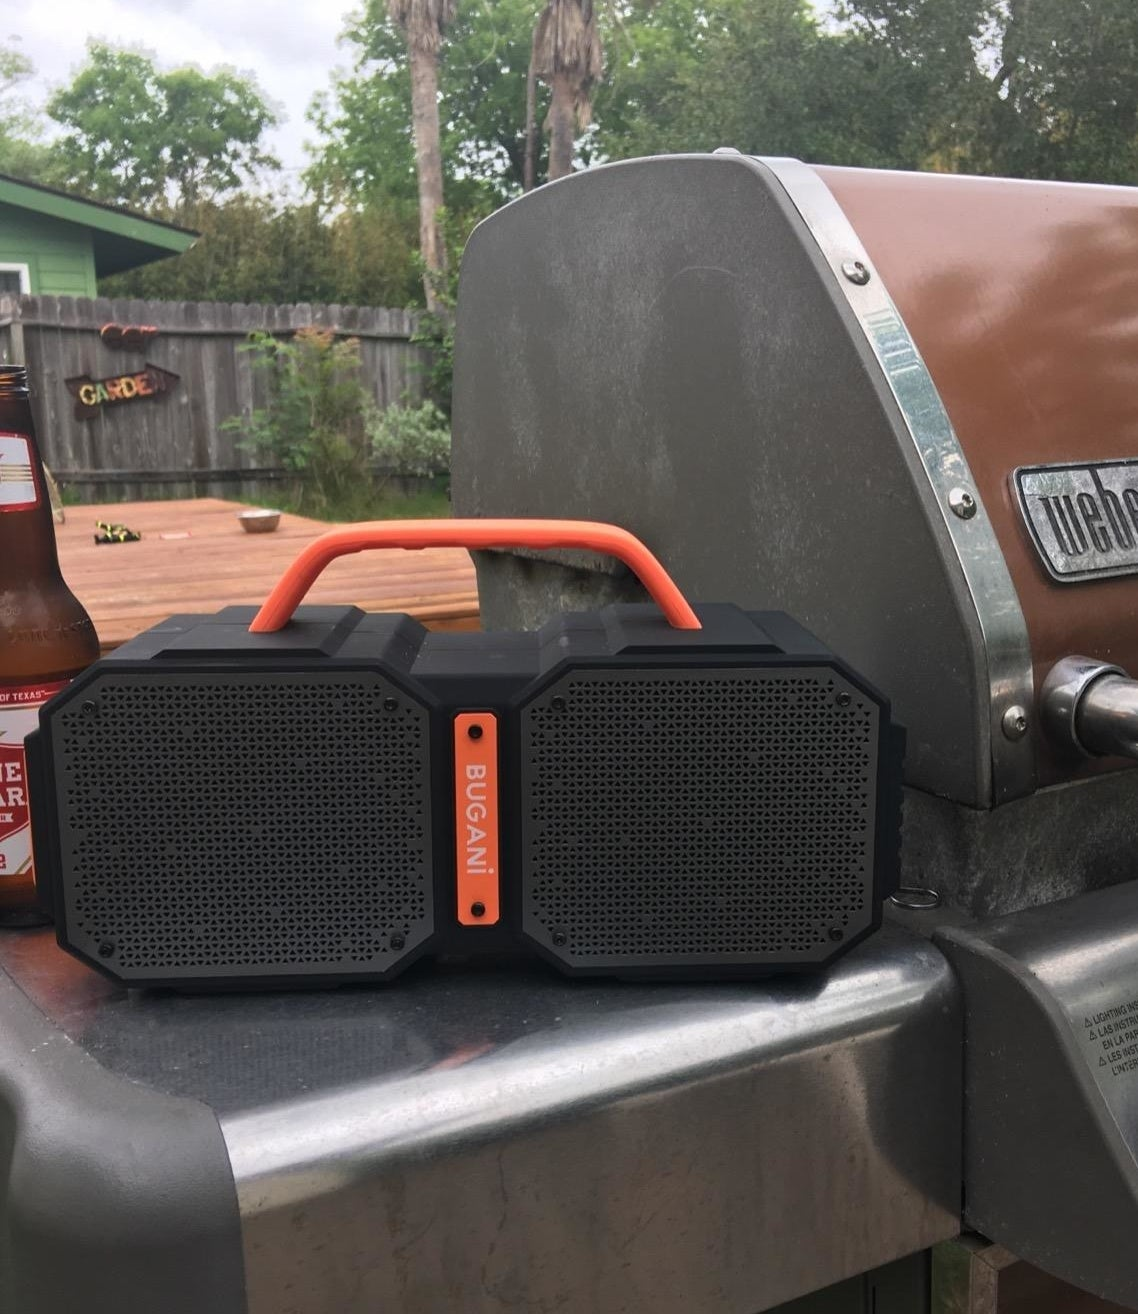 black and orange boombox-shaped speaker sitting on grill side table